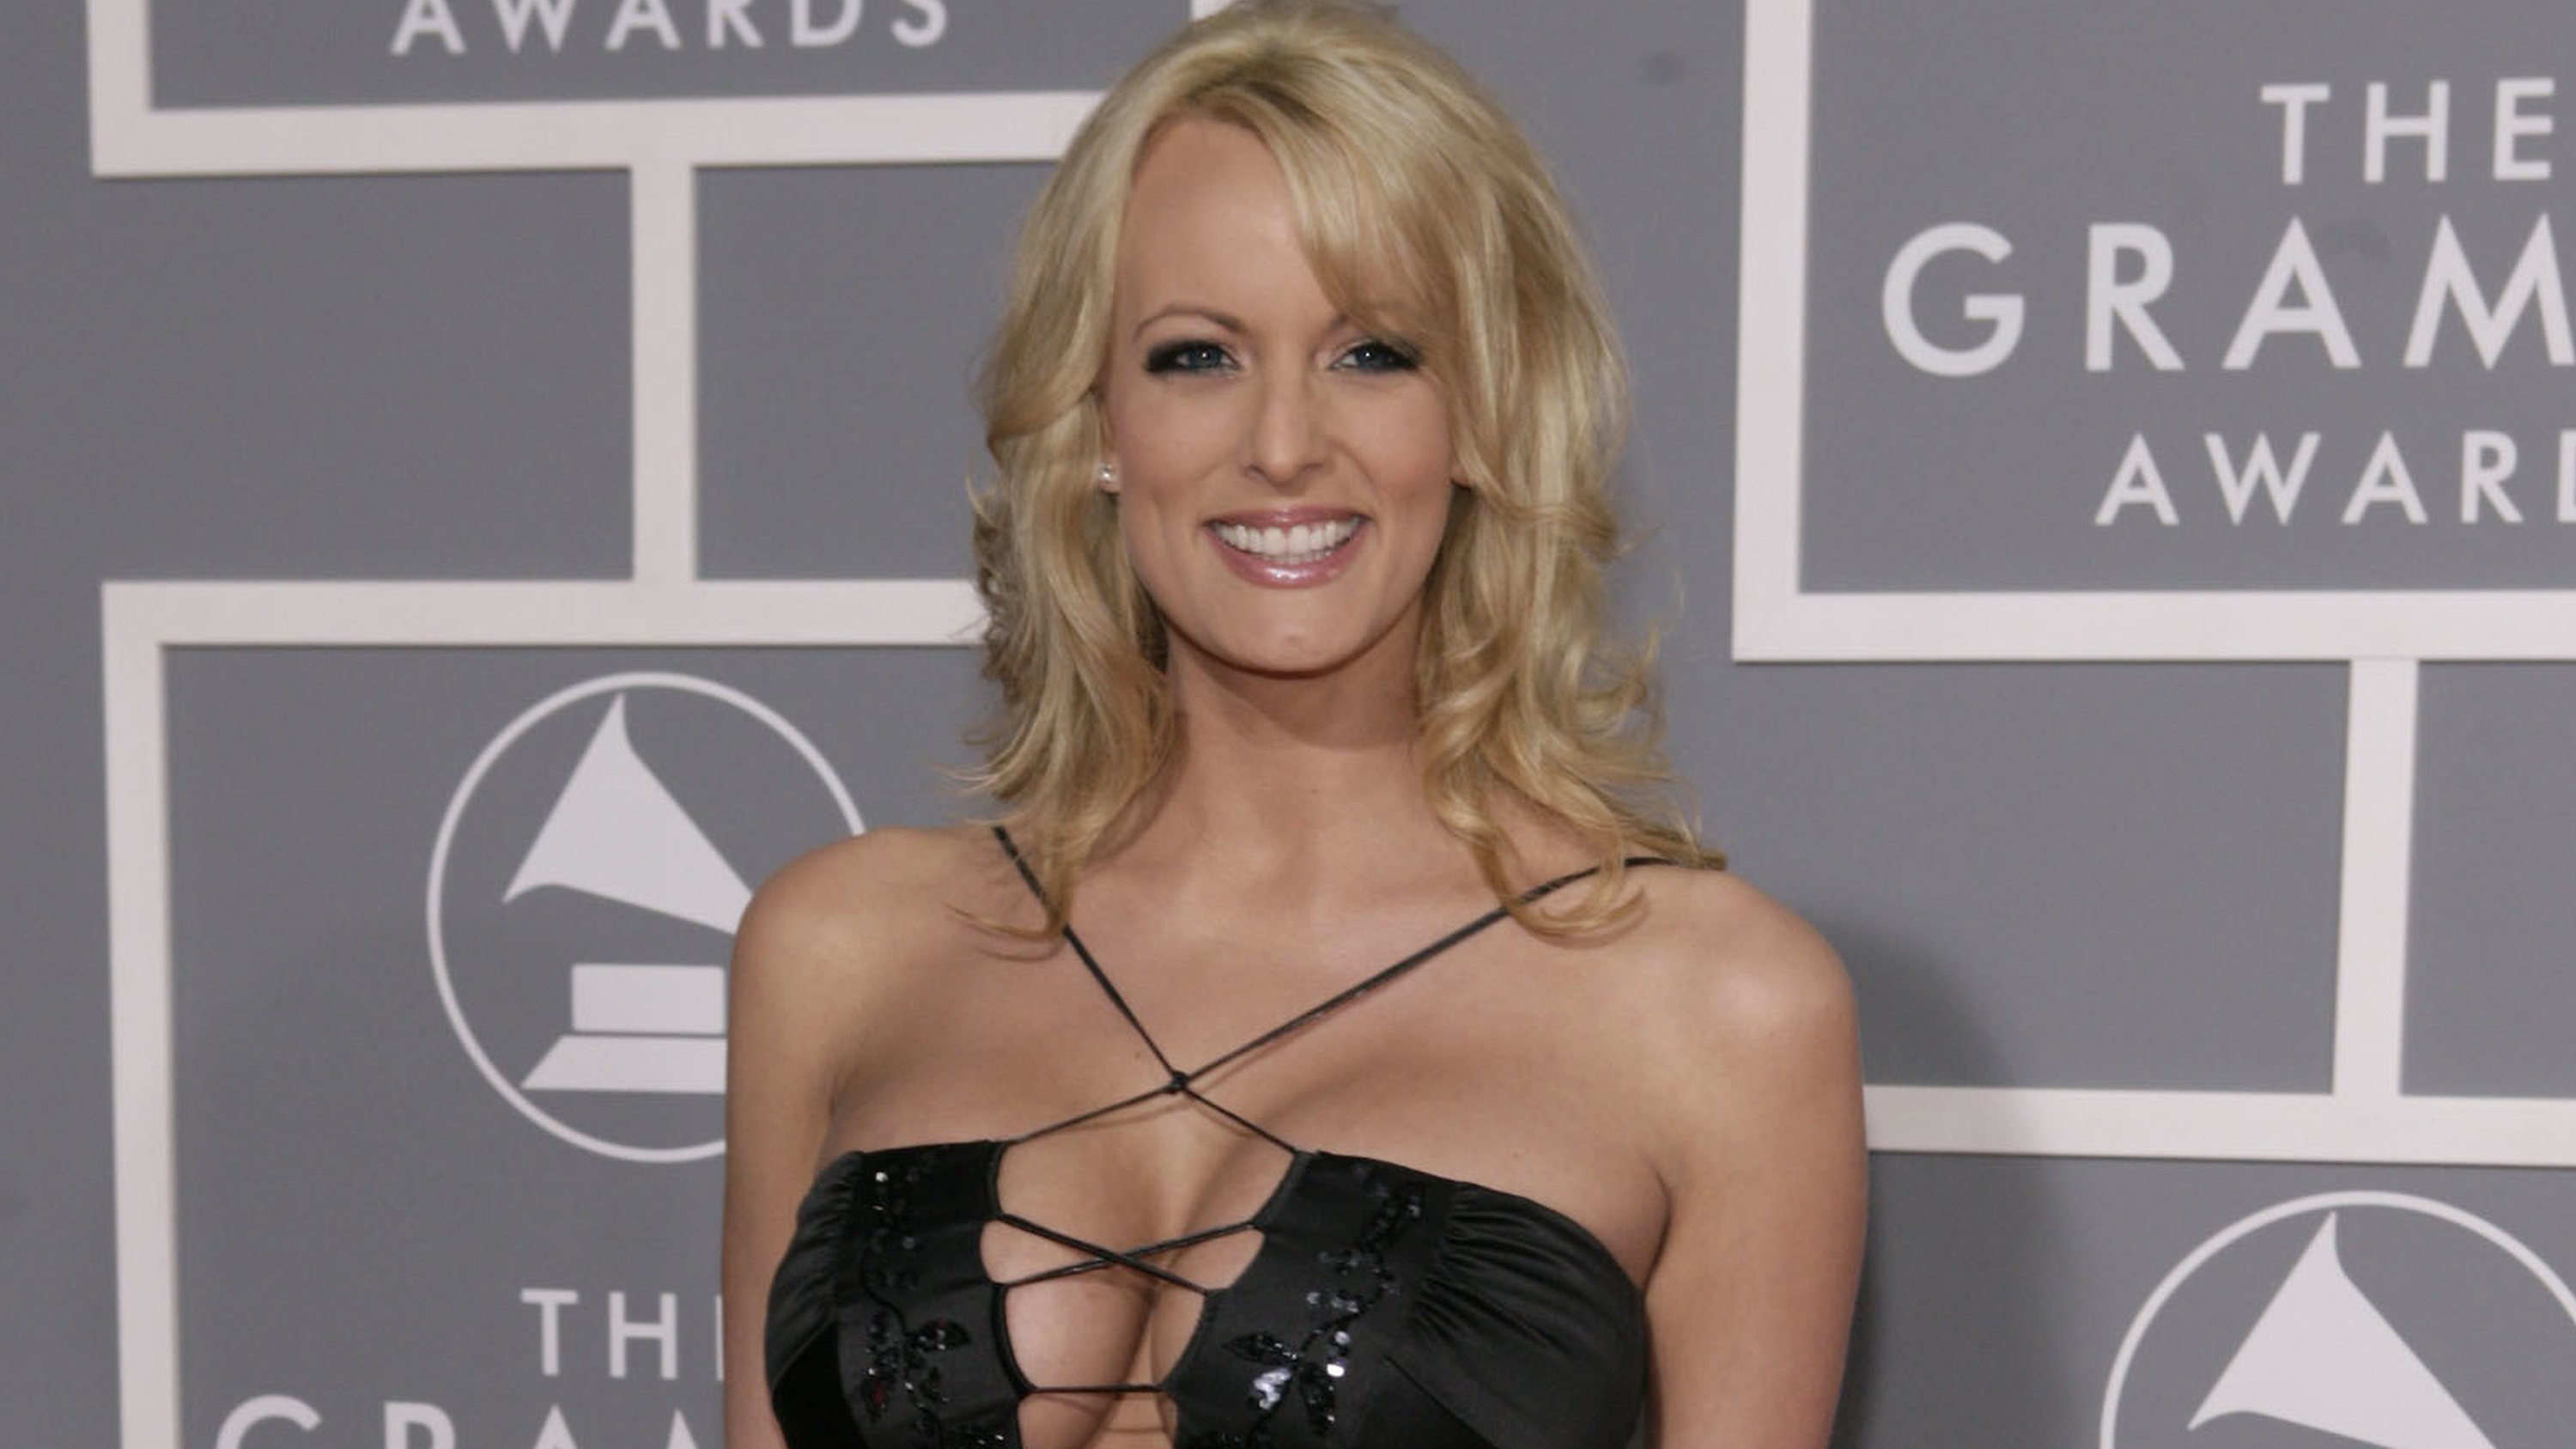 In this Feb. 11, 2007, file photo, adult film actress Stormy Daniels arrives for the 49th Annual Grammy Awards in Los Angeles.